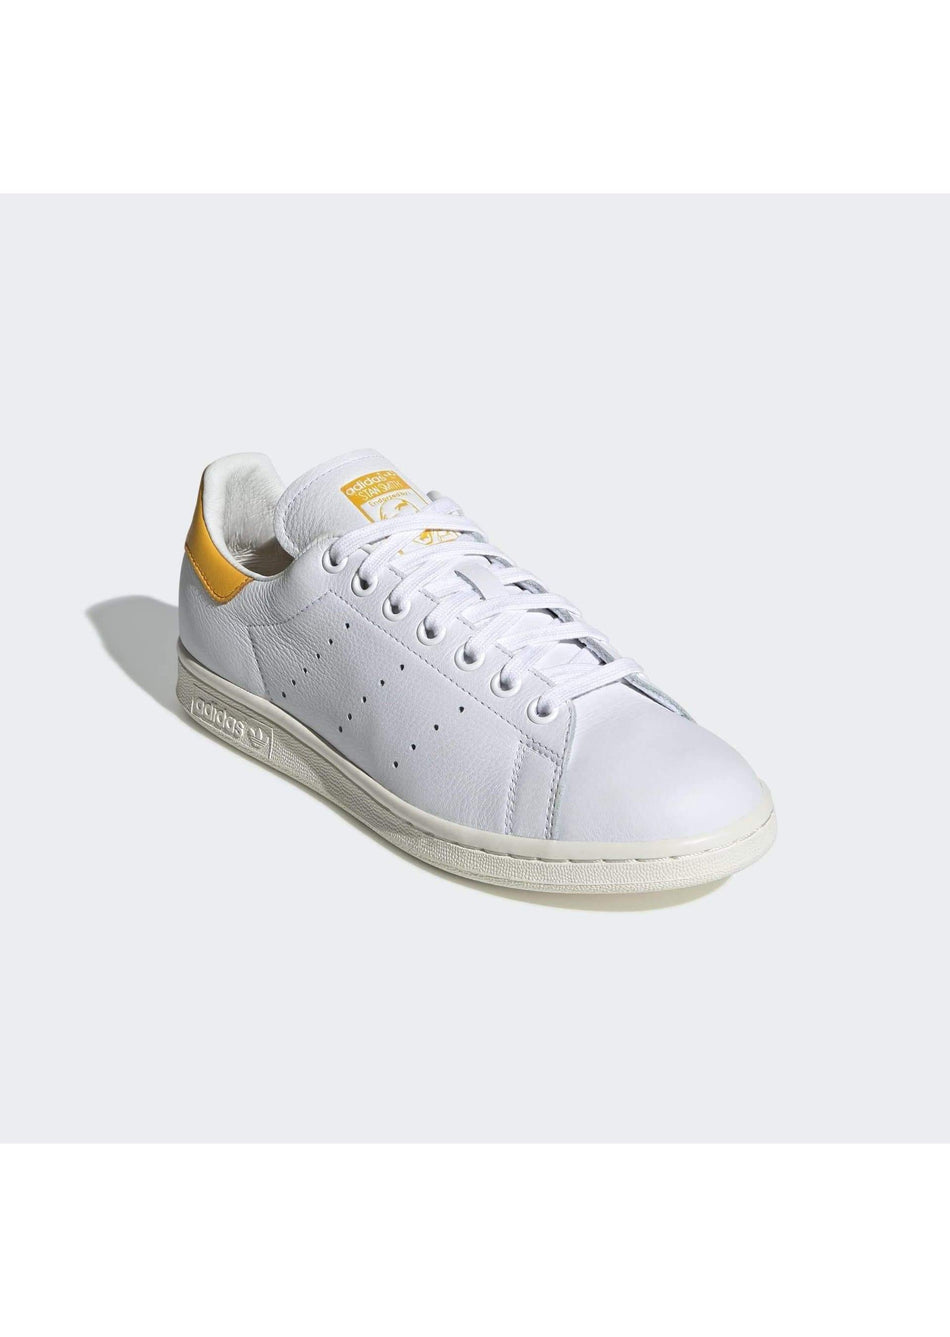 scarpe stan smith ADIDAS ORIGINALS - Vittorio Citro Boutique